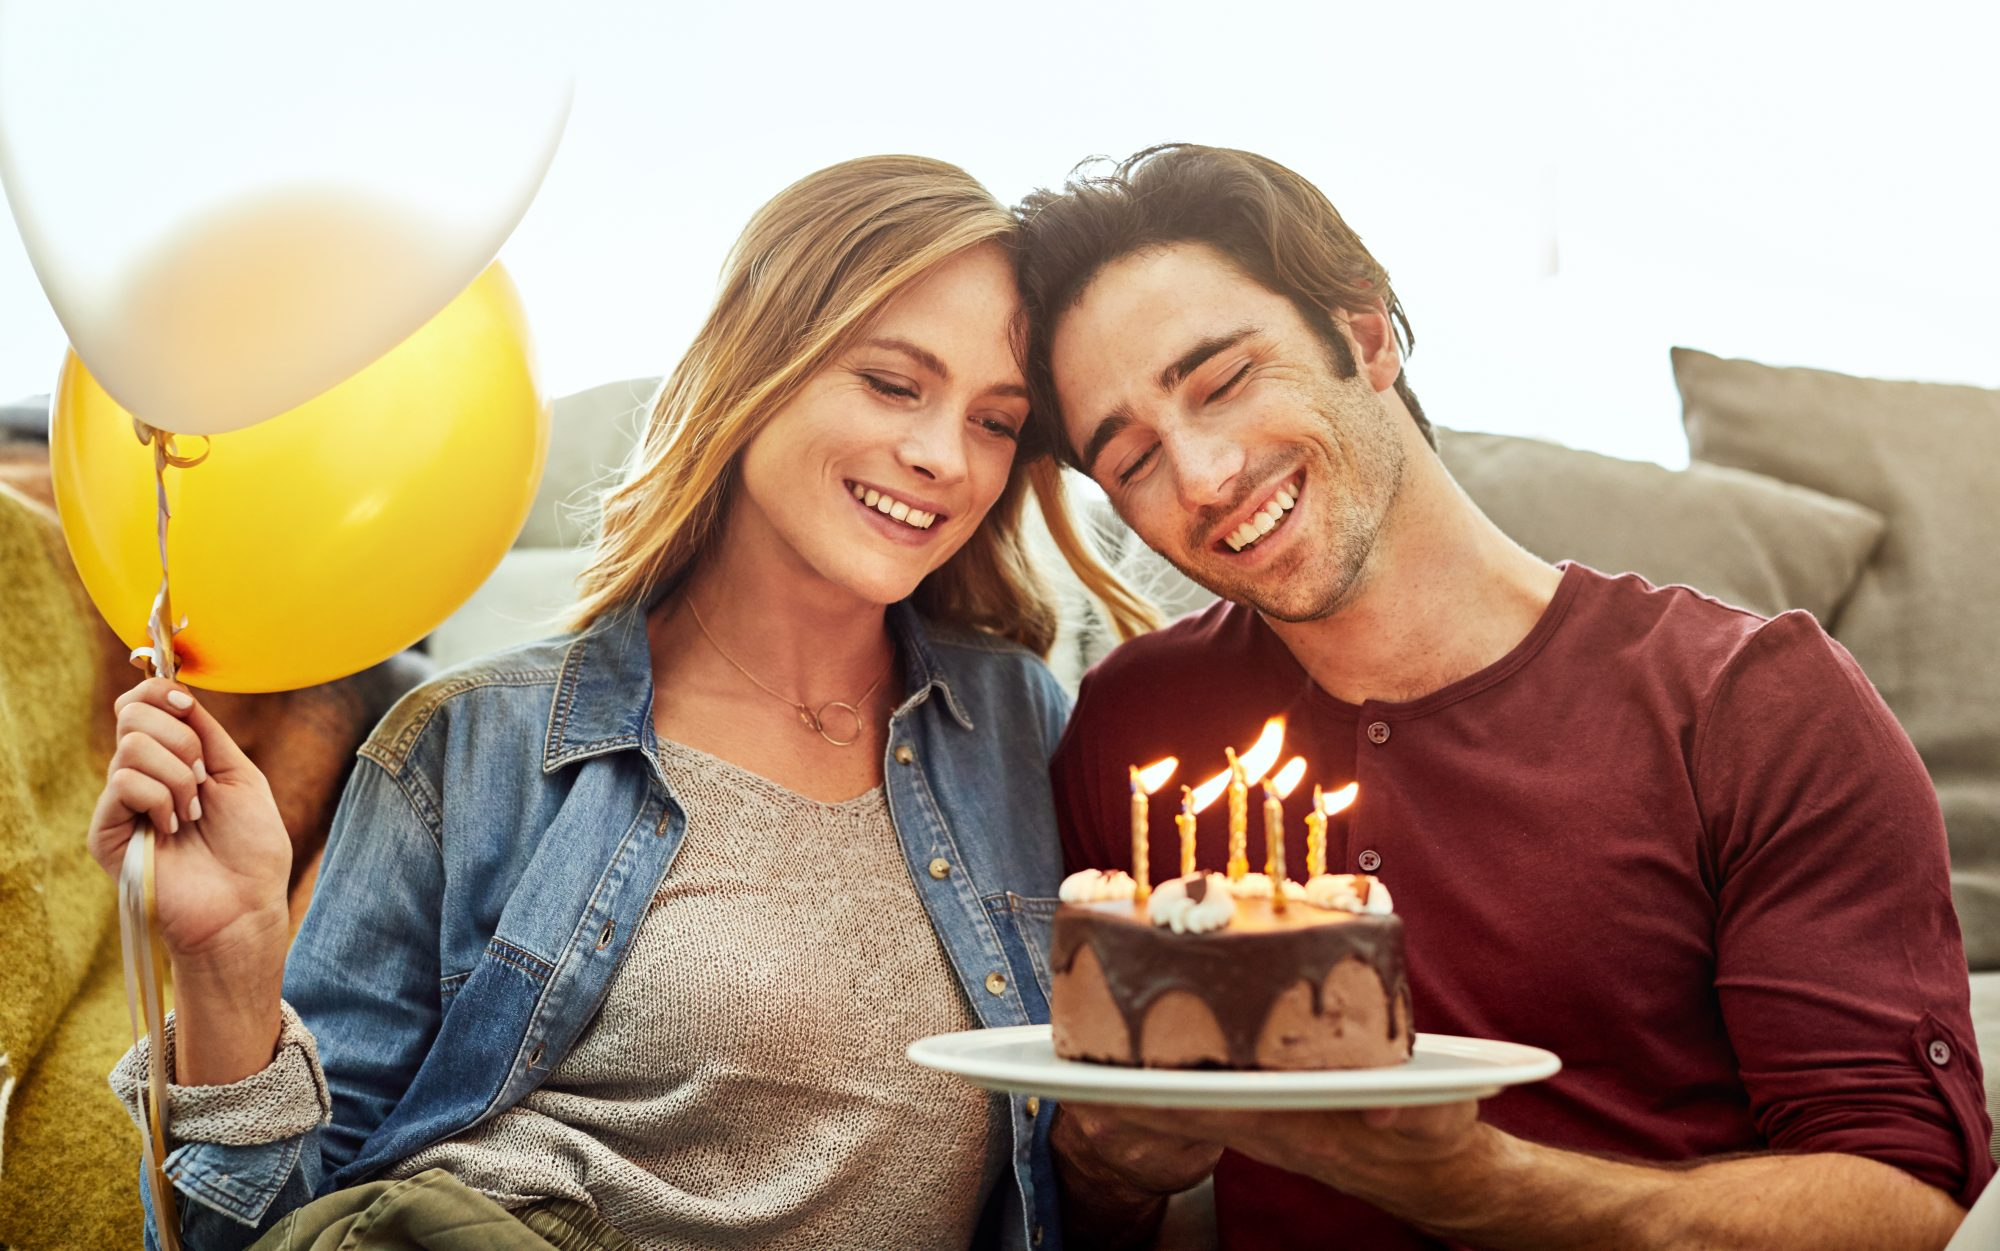 Young Couple Sharing Birthday Cake with Balloons